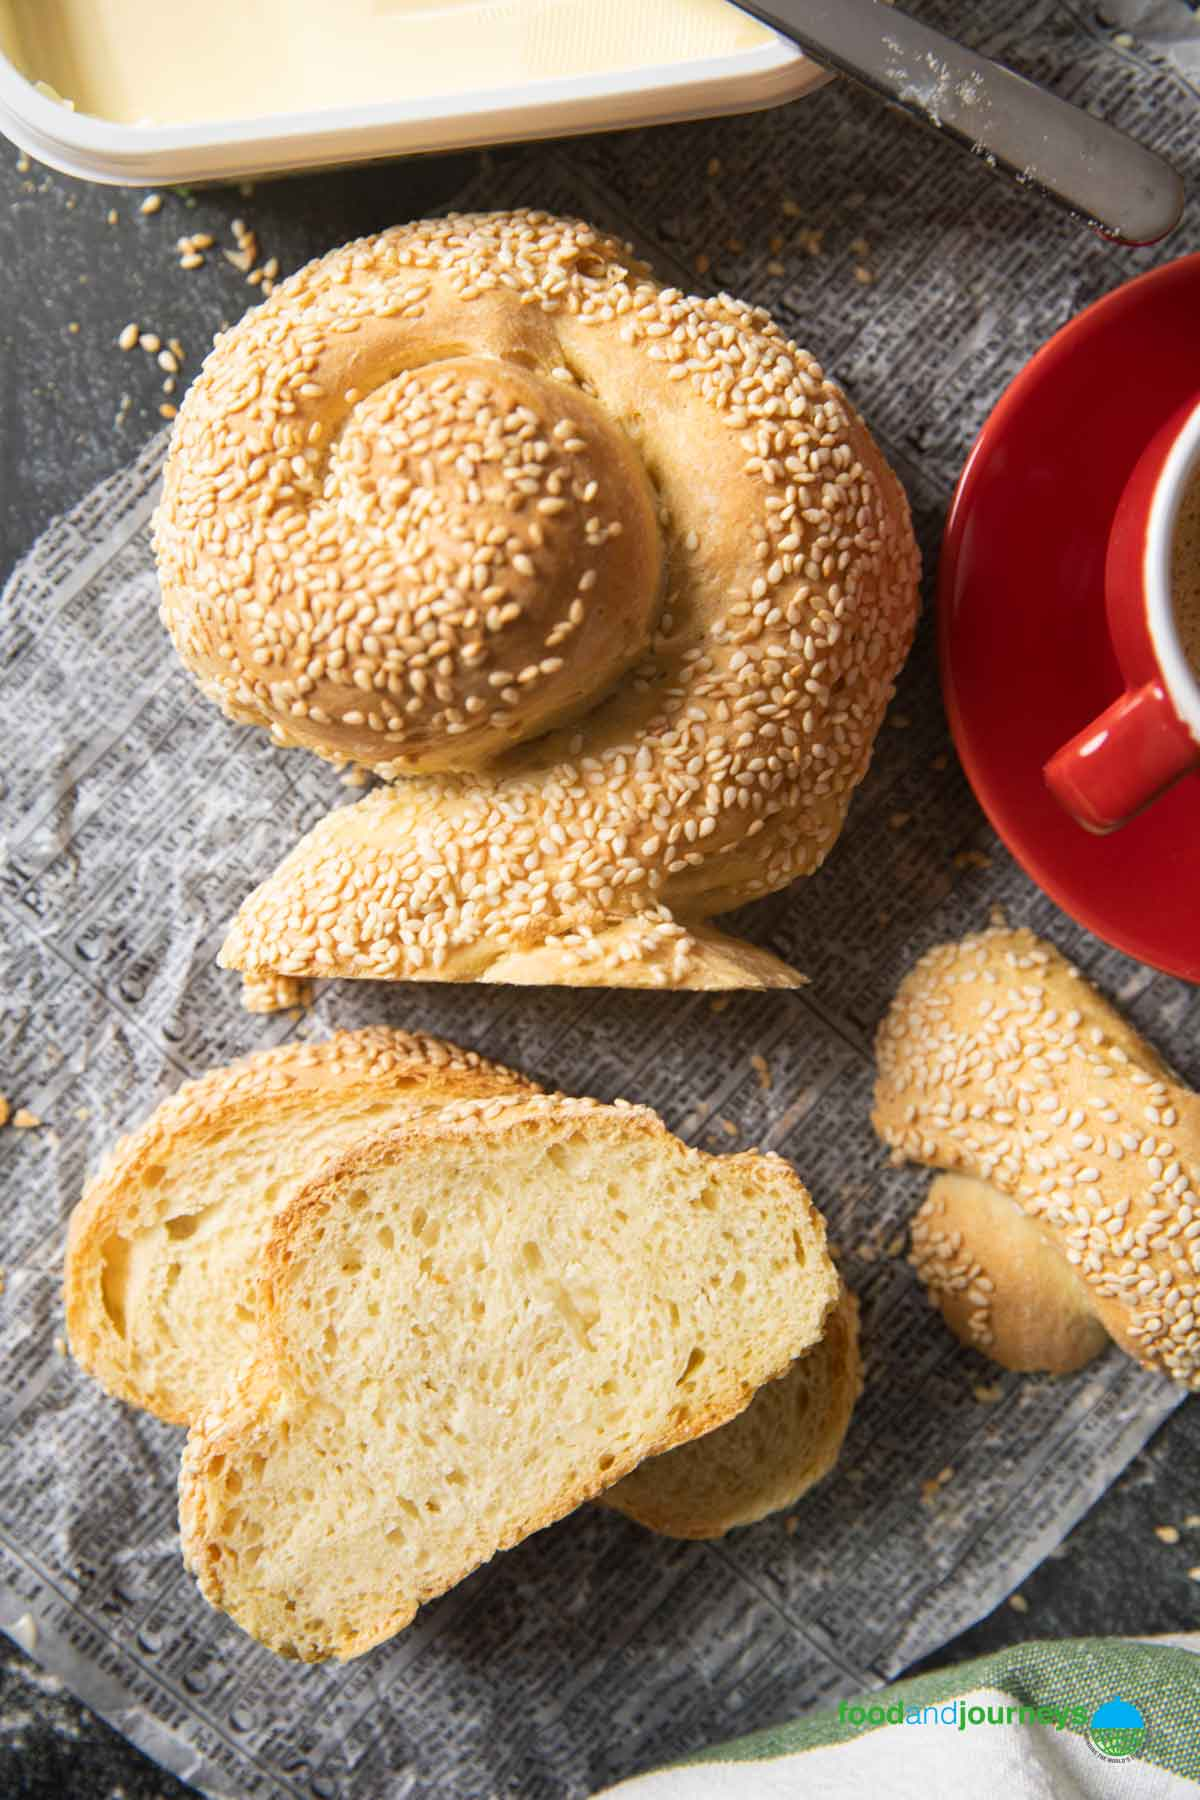 An overhead shot of Pane Siciliano, served with a cup of espresso, and some slices ready to be enjoyed.